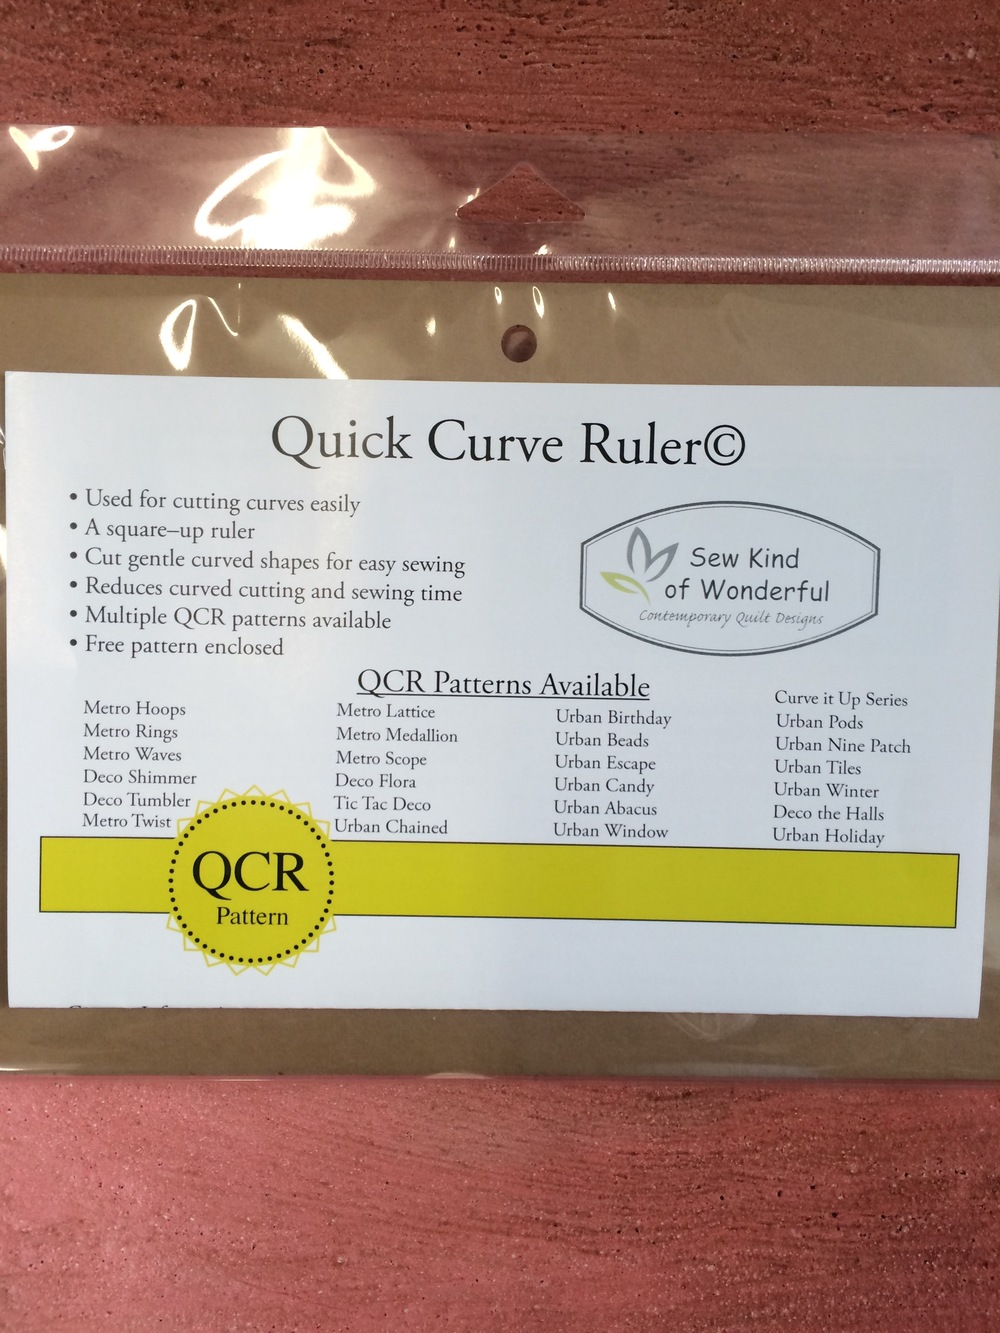 The Quick Curve Ruler.